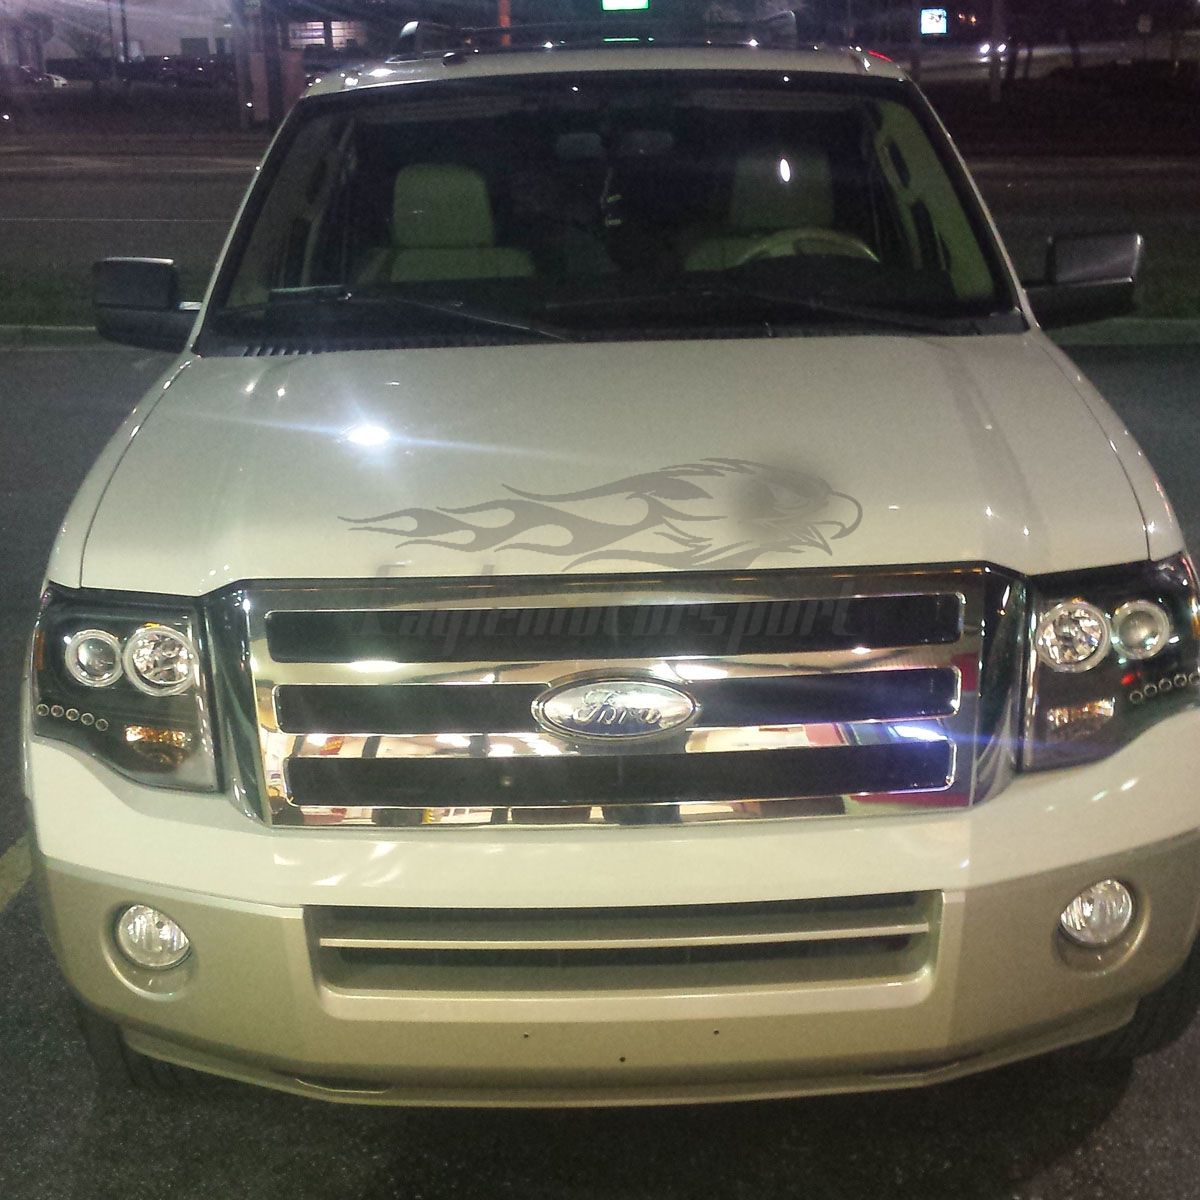 Ford Expedition 2008 For Sale: [Dual CCFL Halo] 2007-2014 Ford Expedition Black Led